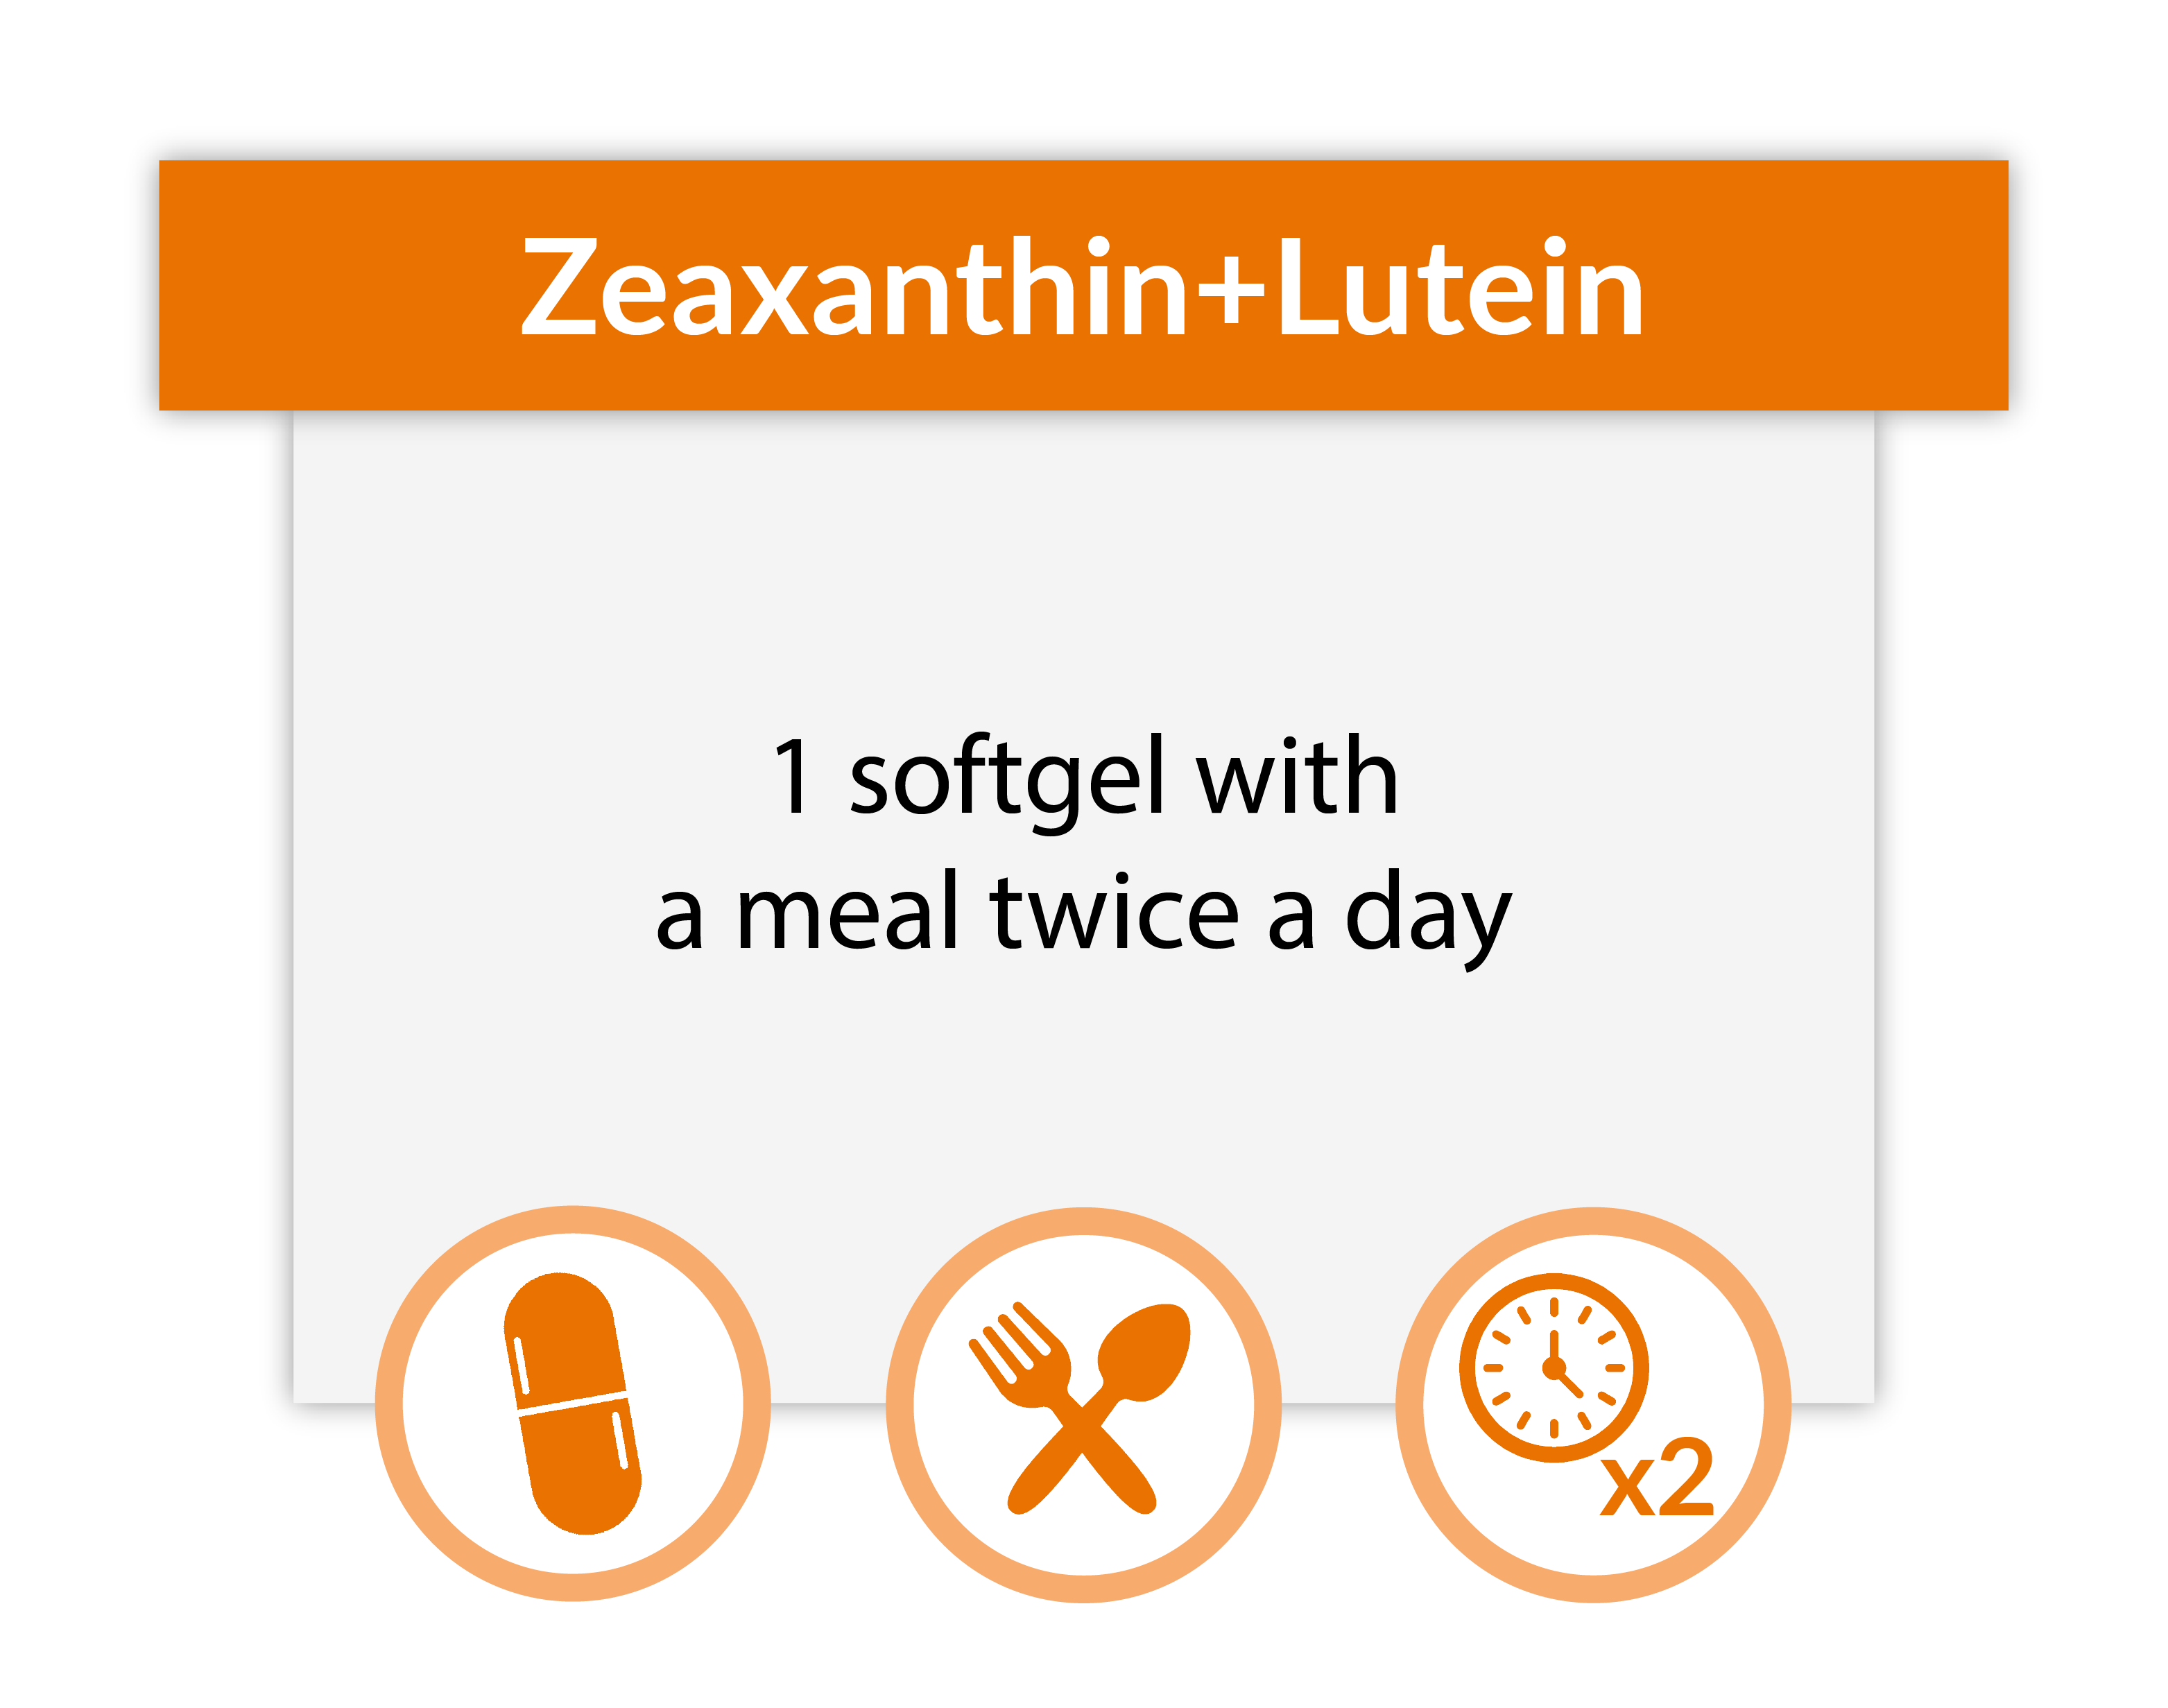 Take 1 Zeaxanthin + Lutein softgel with a meal twice a day.